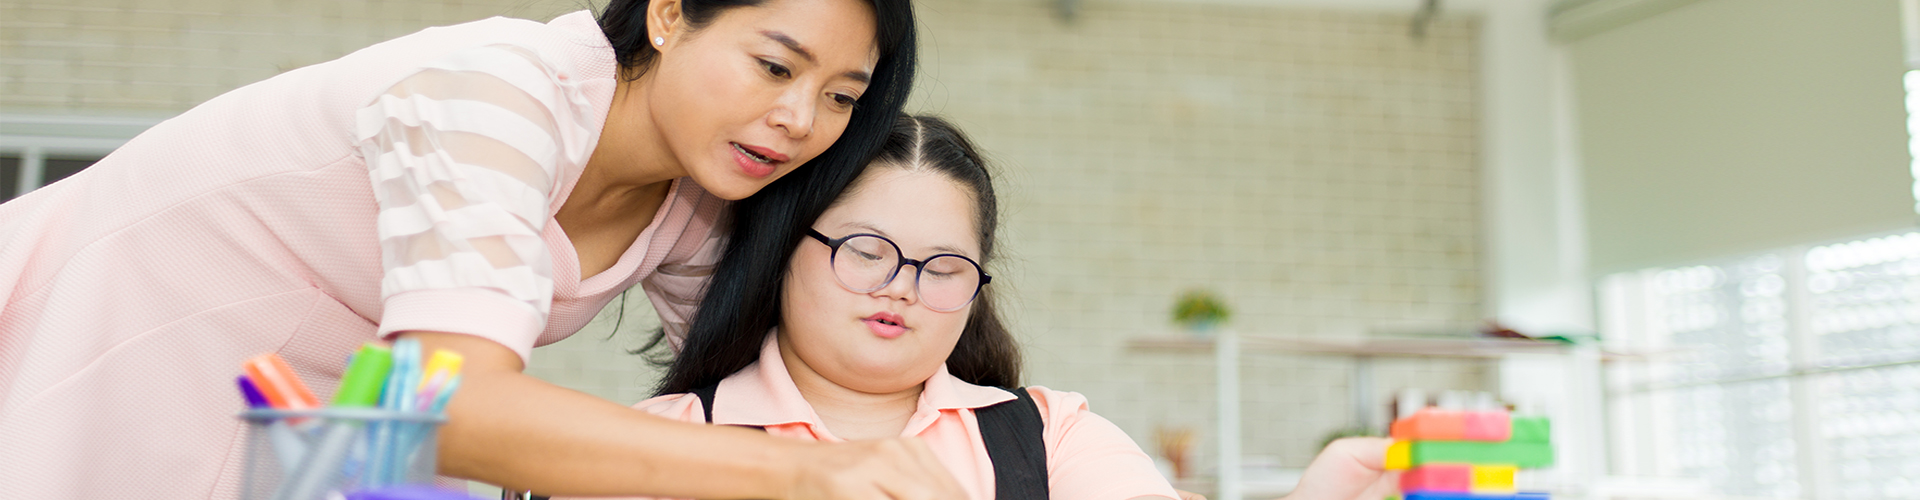 woman helping girl with puzzle